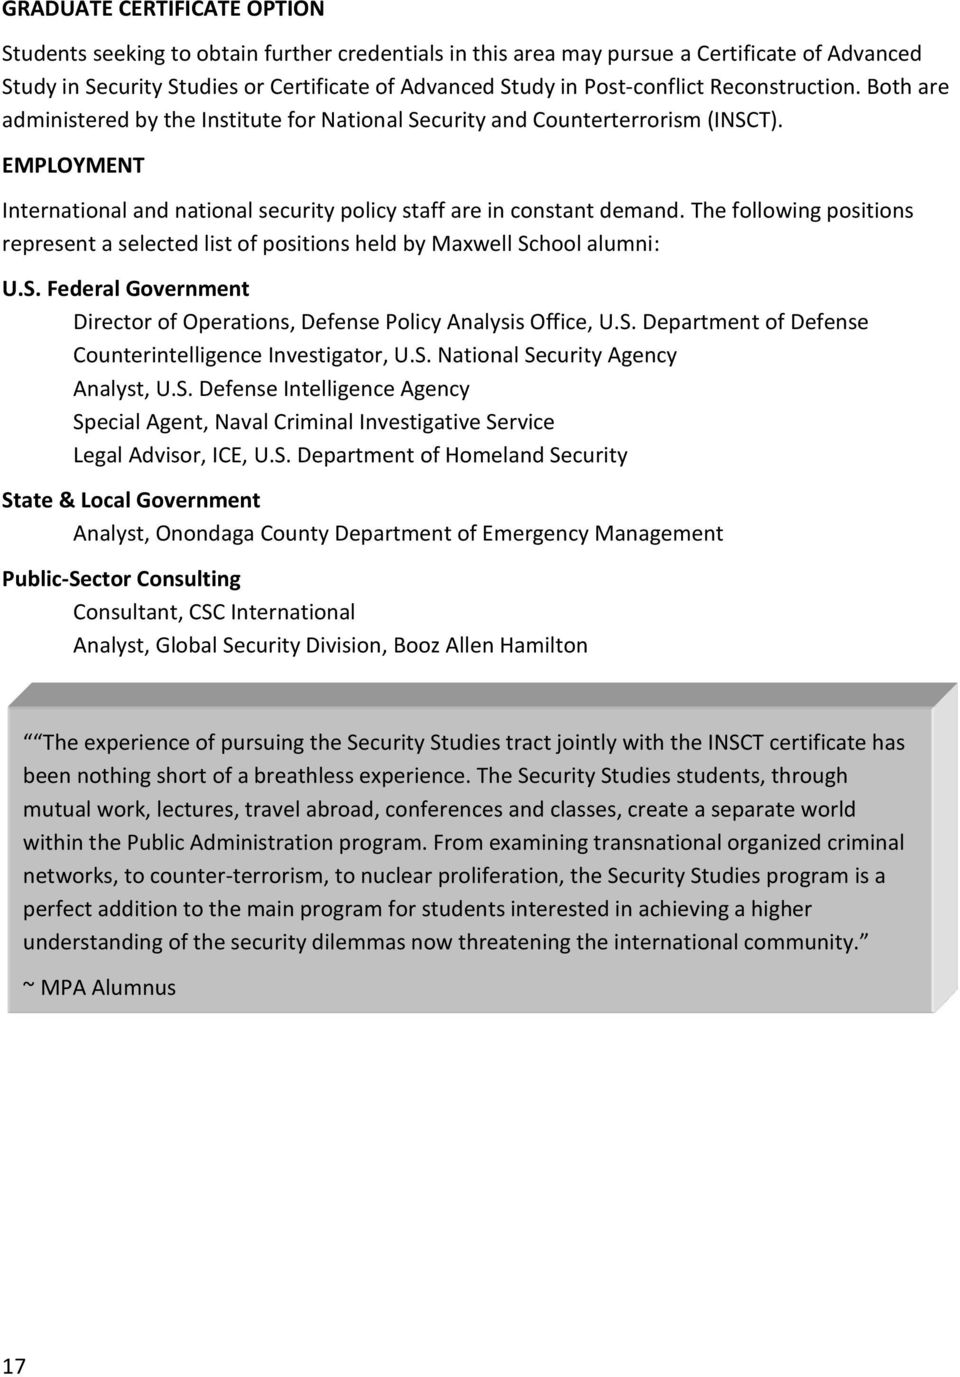 EMPLOYMENT International and national security policy staff are in constant demand. The following positions represent a selected list of positions held by Maxwell Sc